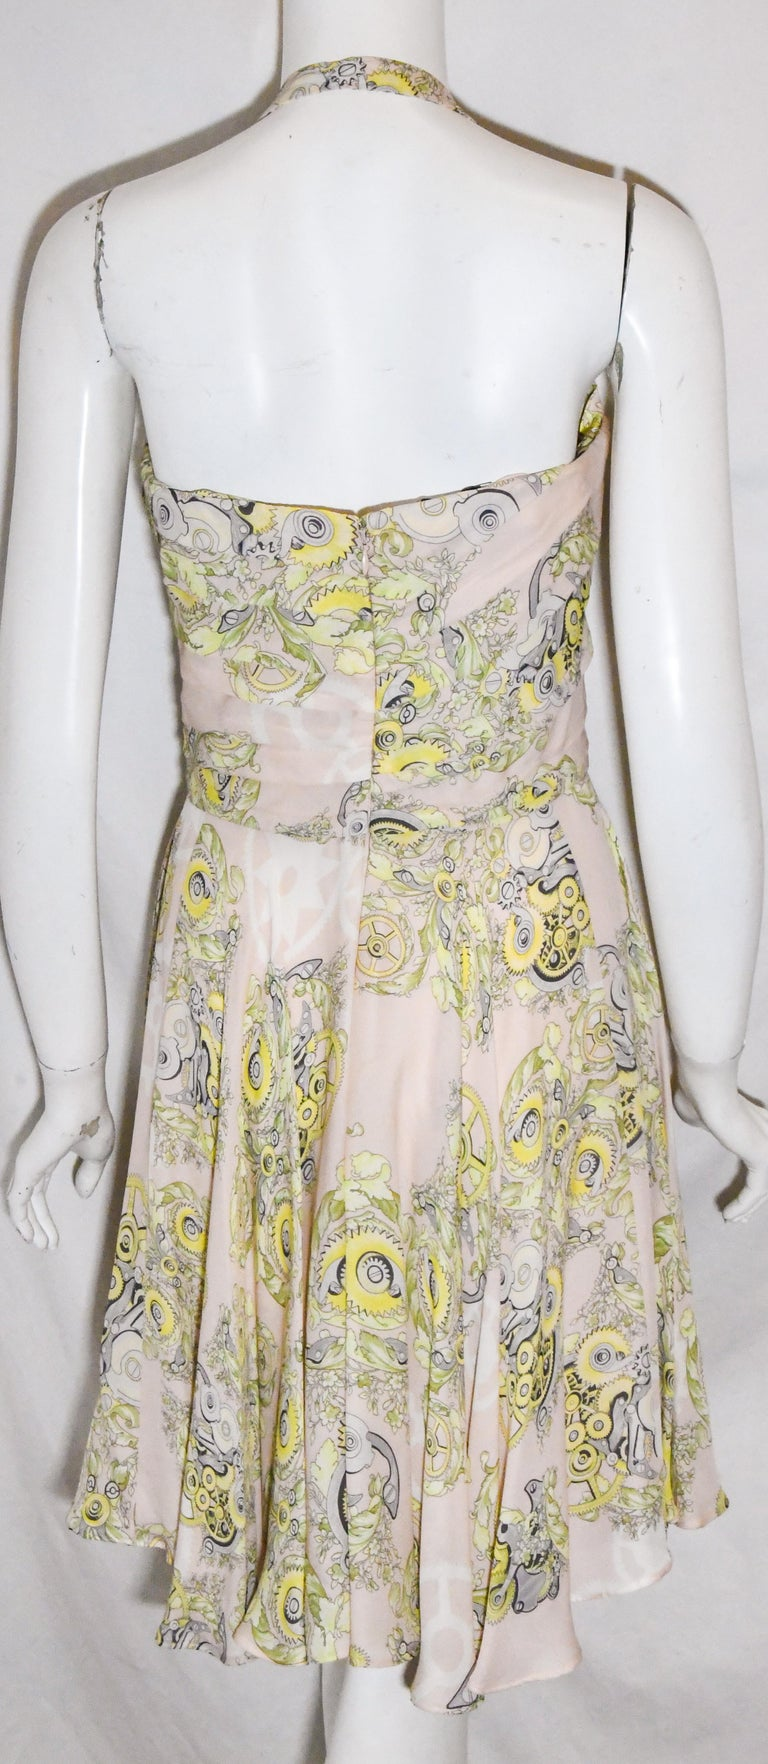 Versace Collection Halter Top Full Skirt White & Yellow Print Dress In Excellent Condition For Sale In Palm Beach, FL